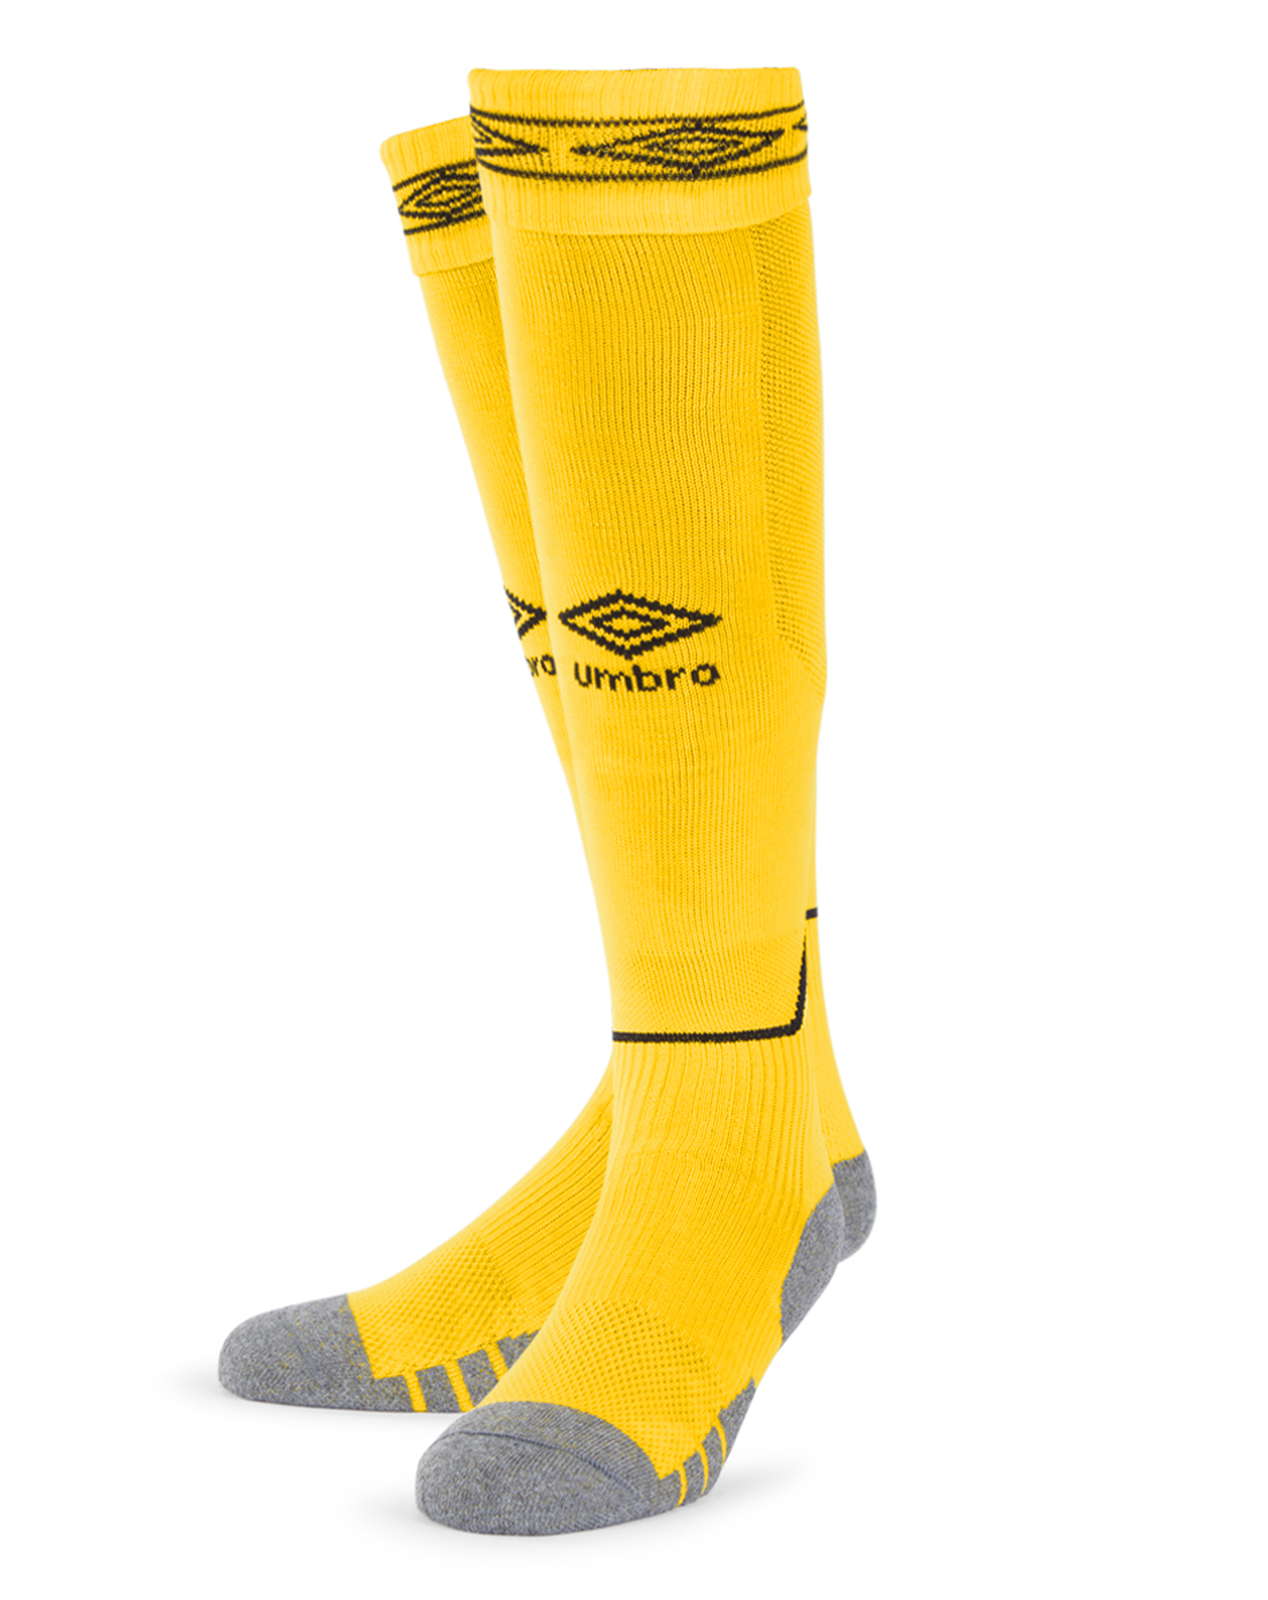 Umbro Diamond Top Socks in yellow with black Diamond turnover design